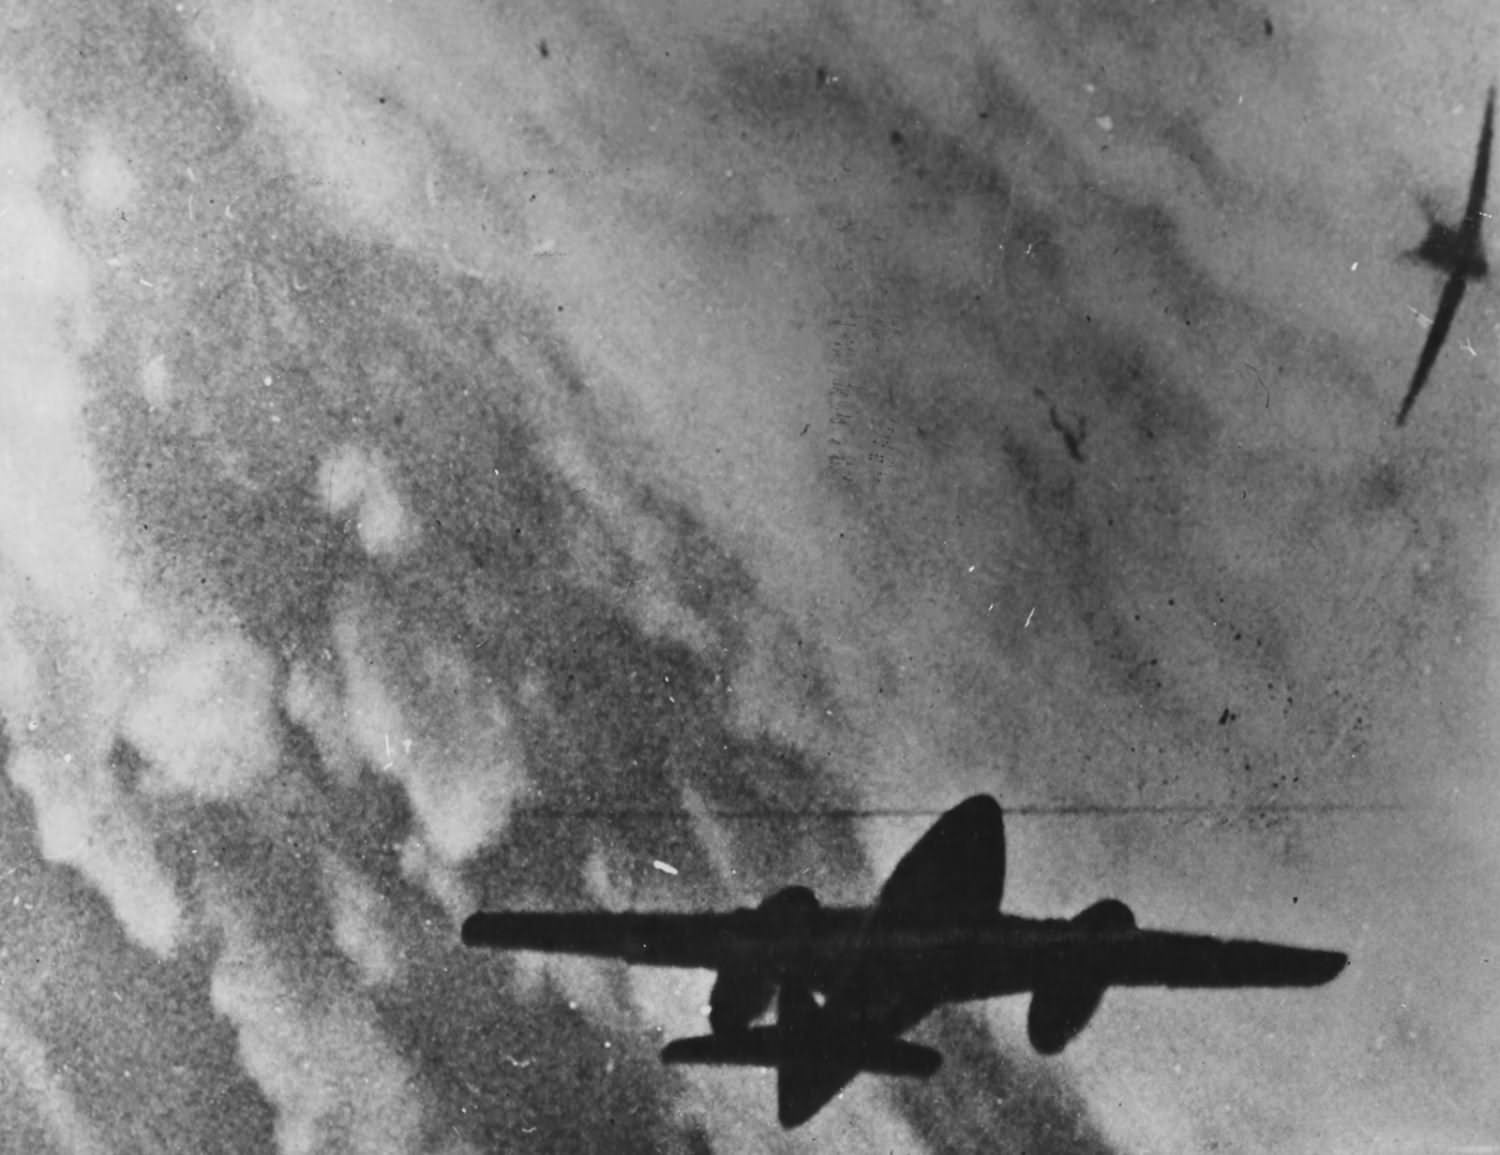 Camera Gun Camera Footage german fighter jet me 262 in gun camera footage world war photos footage